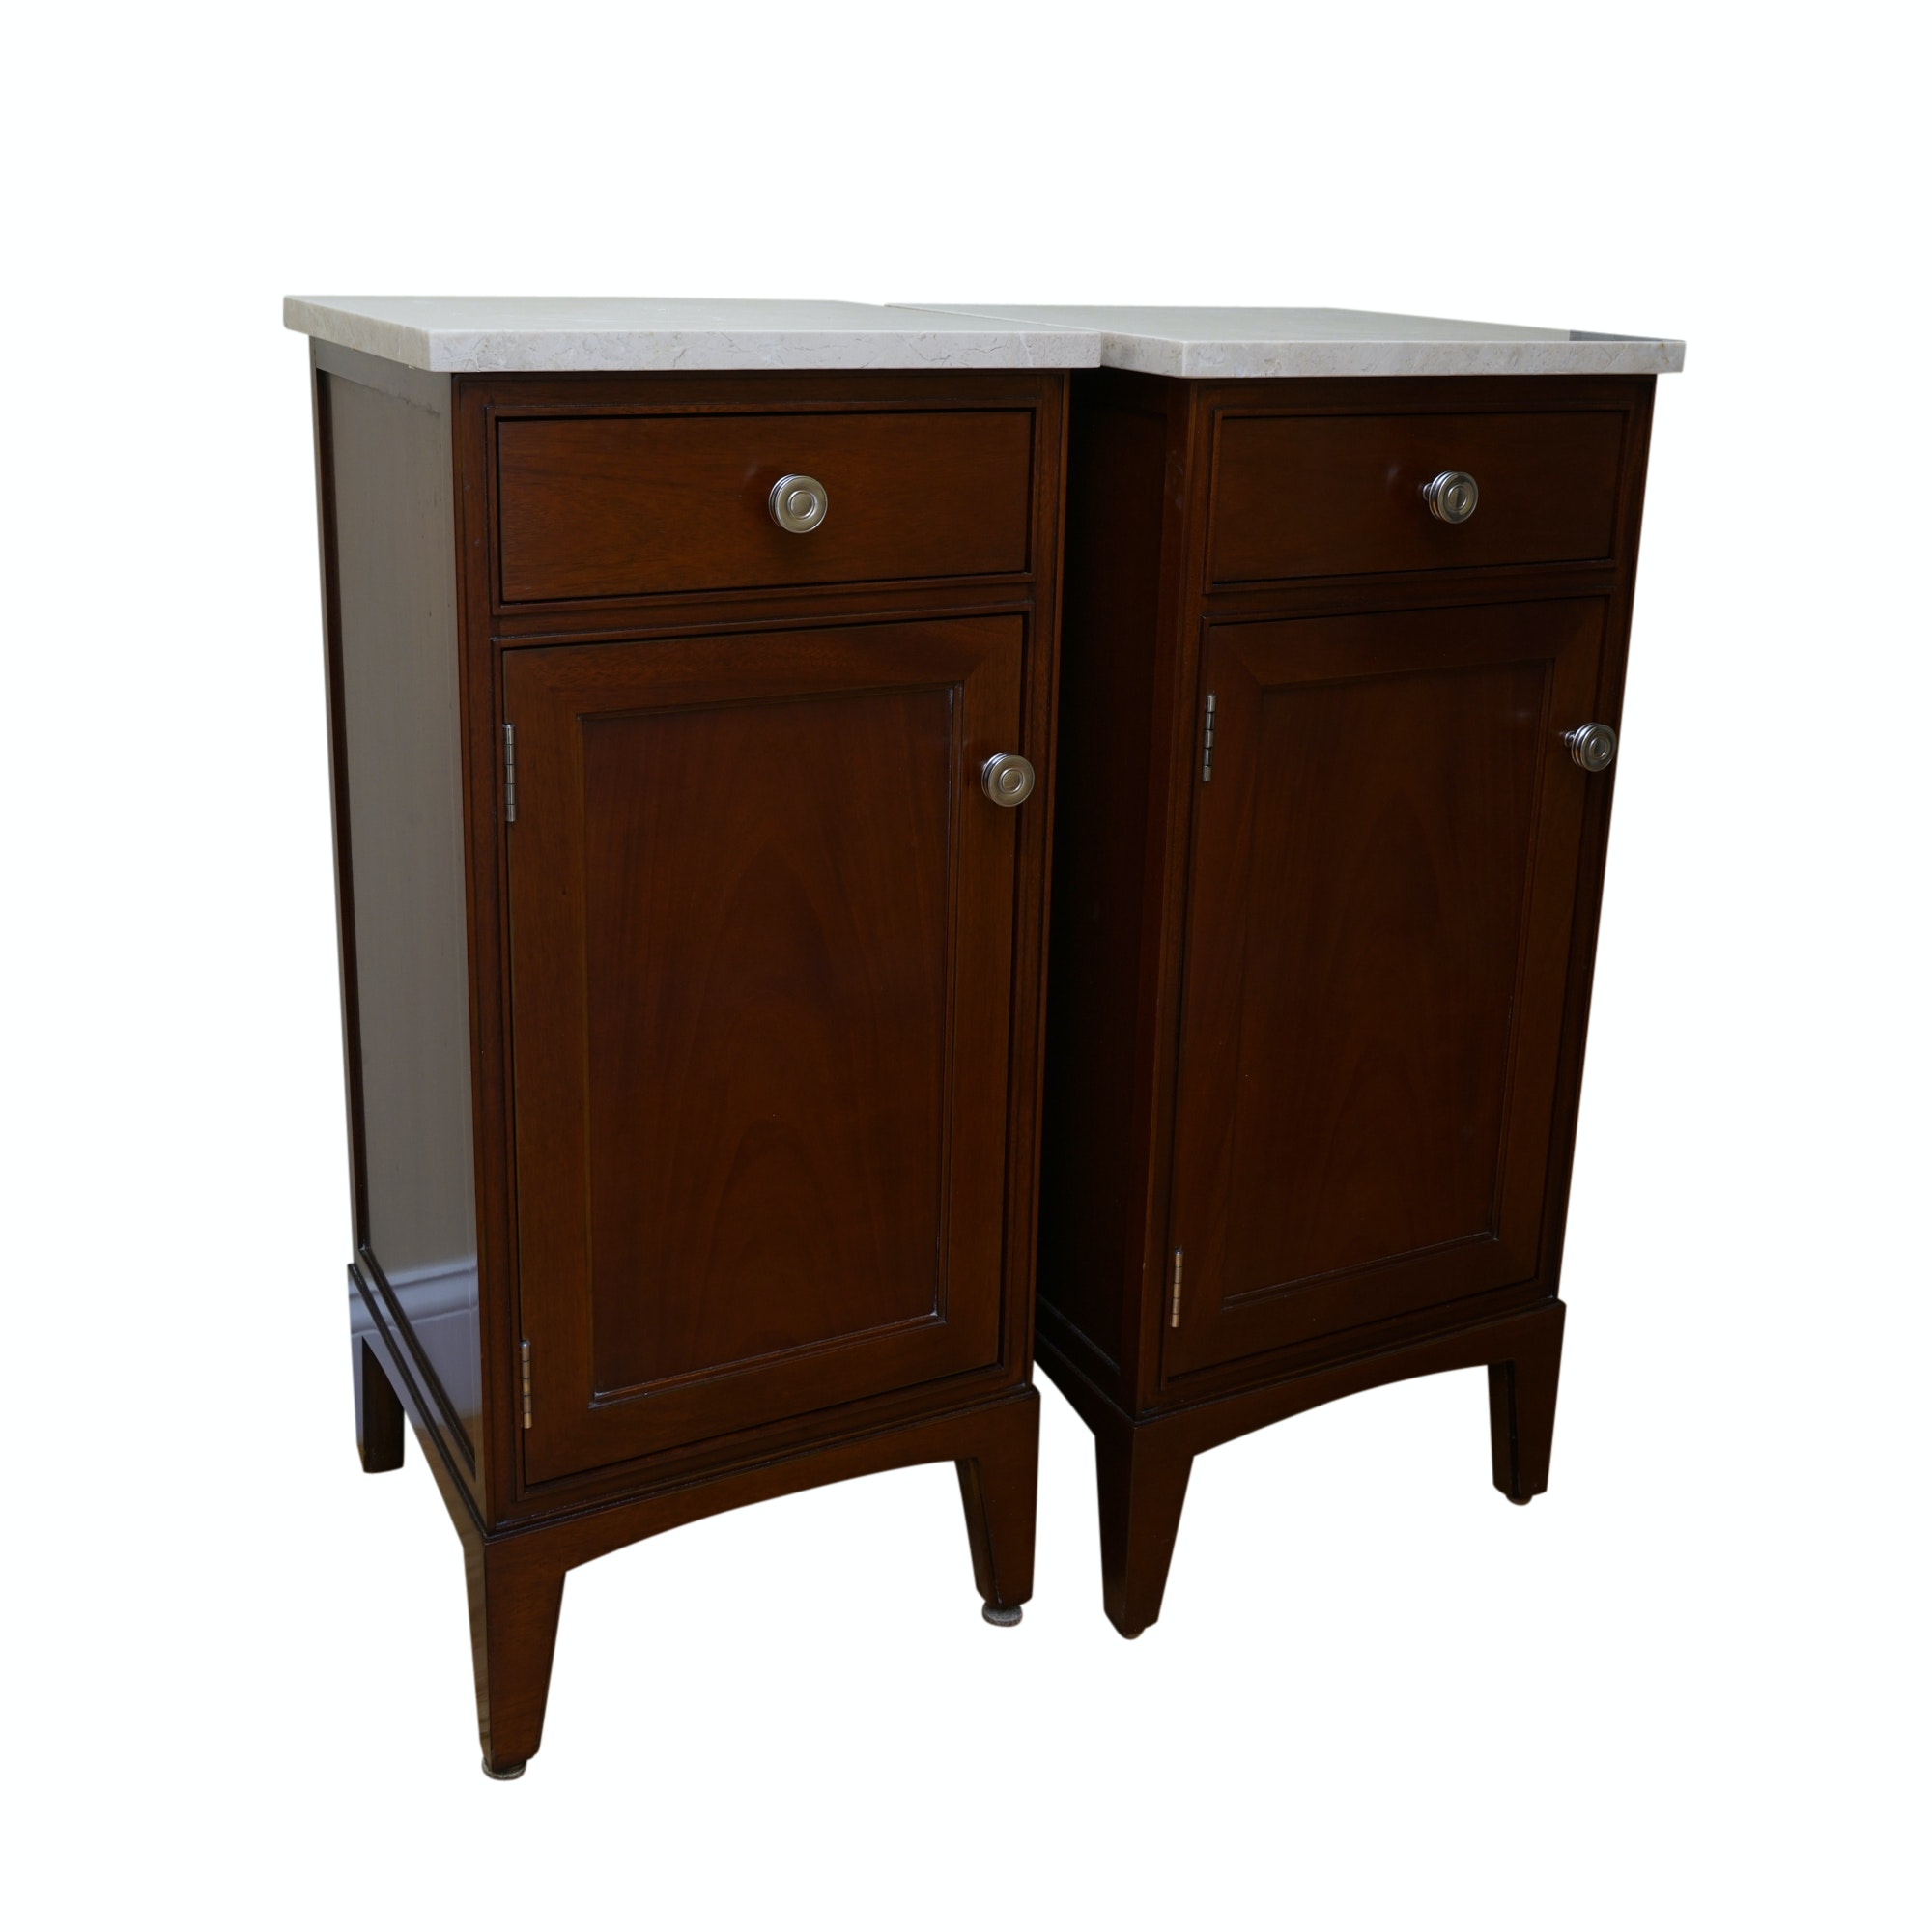 Pair of Stone Top Cabinets from Waterworks